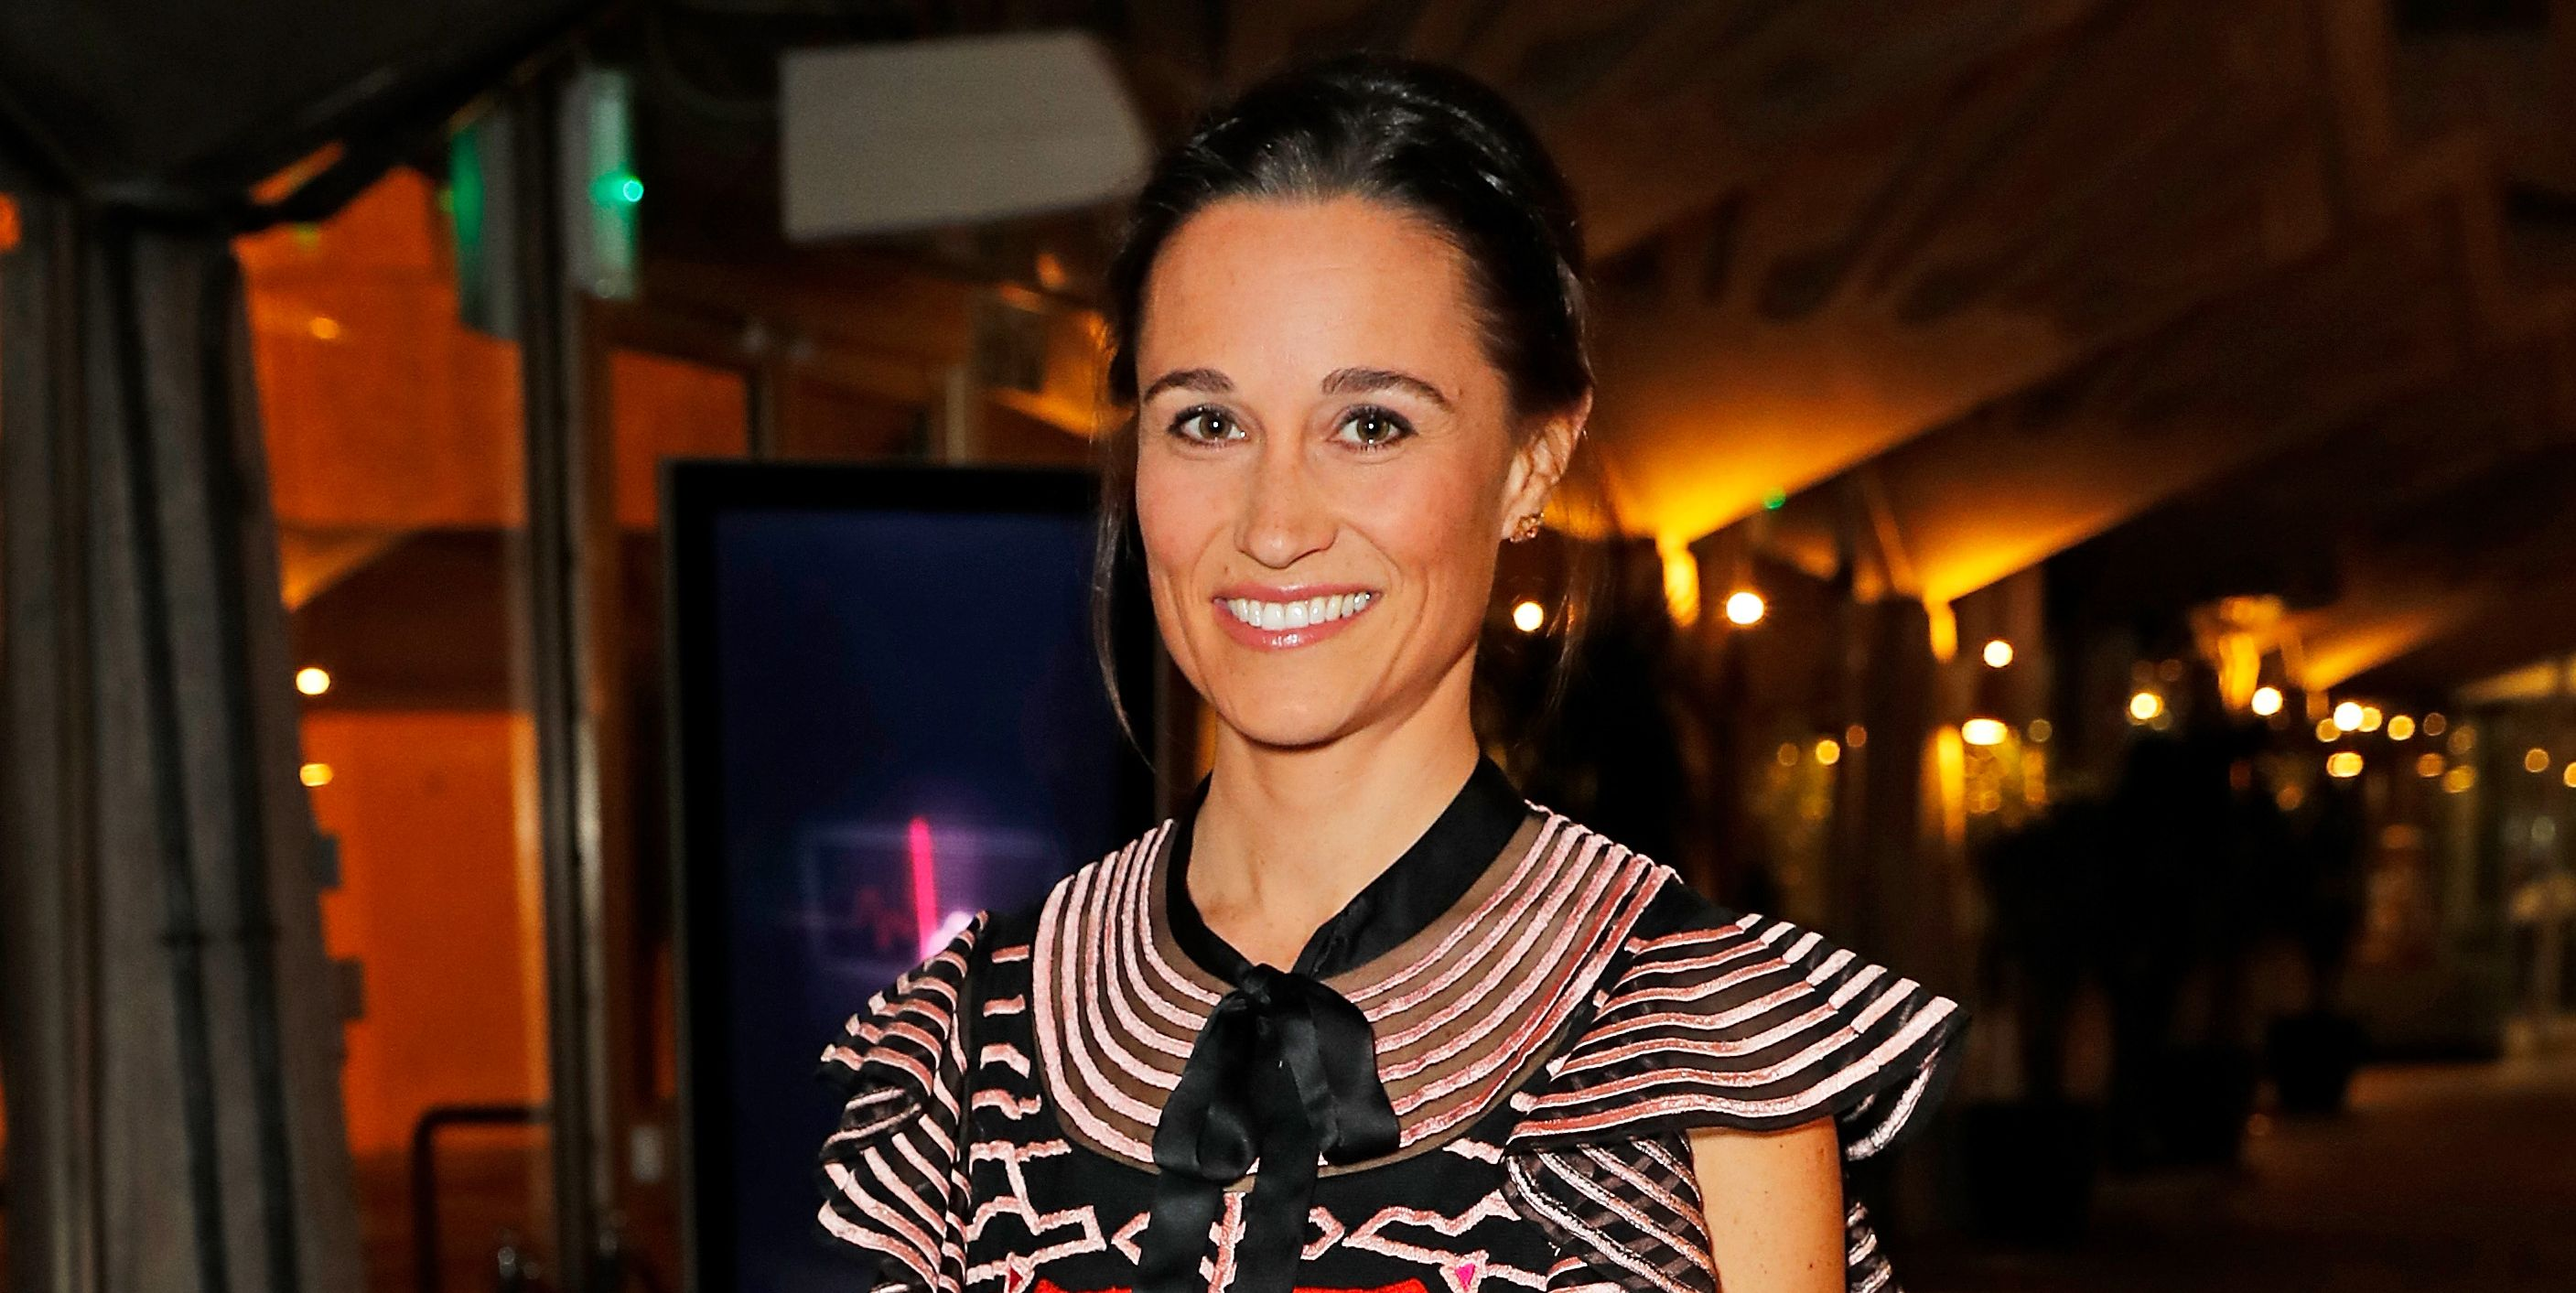 Pippa Middleton wore the prettiest Temperley dress for her first public appearance since giving birth